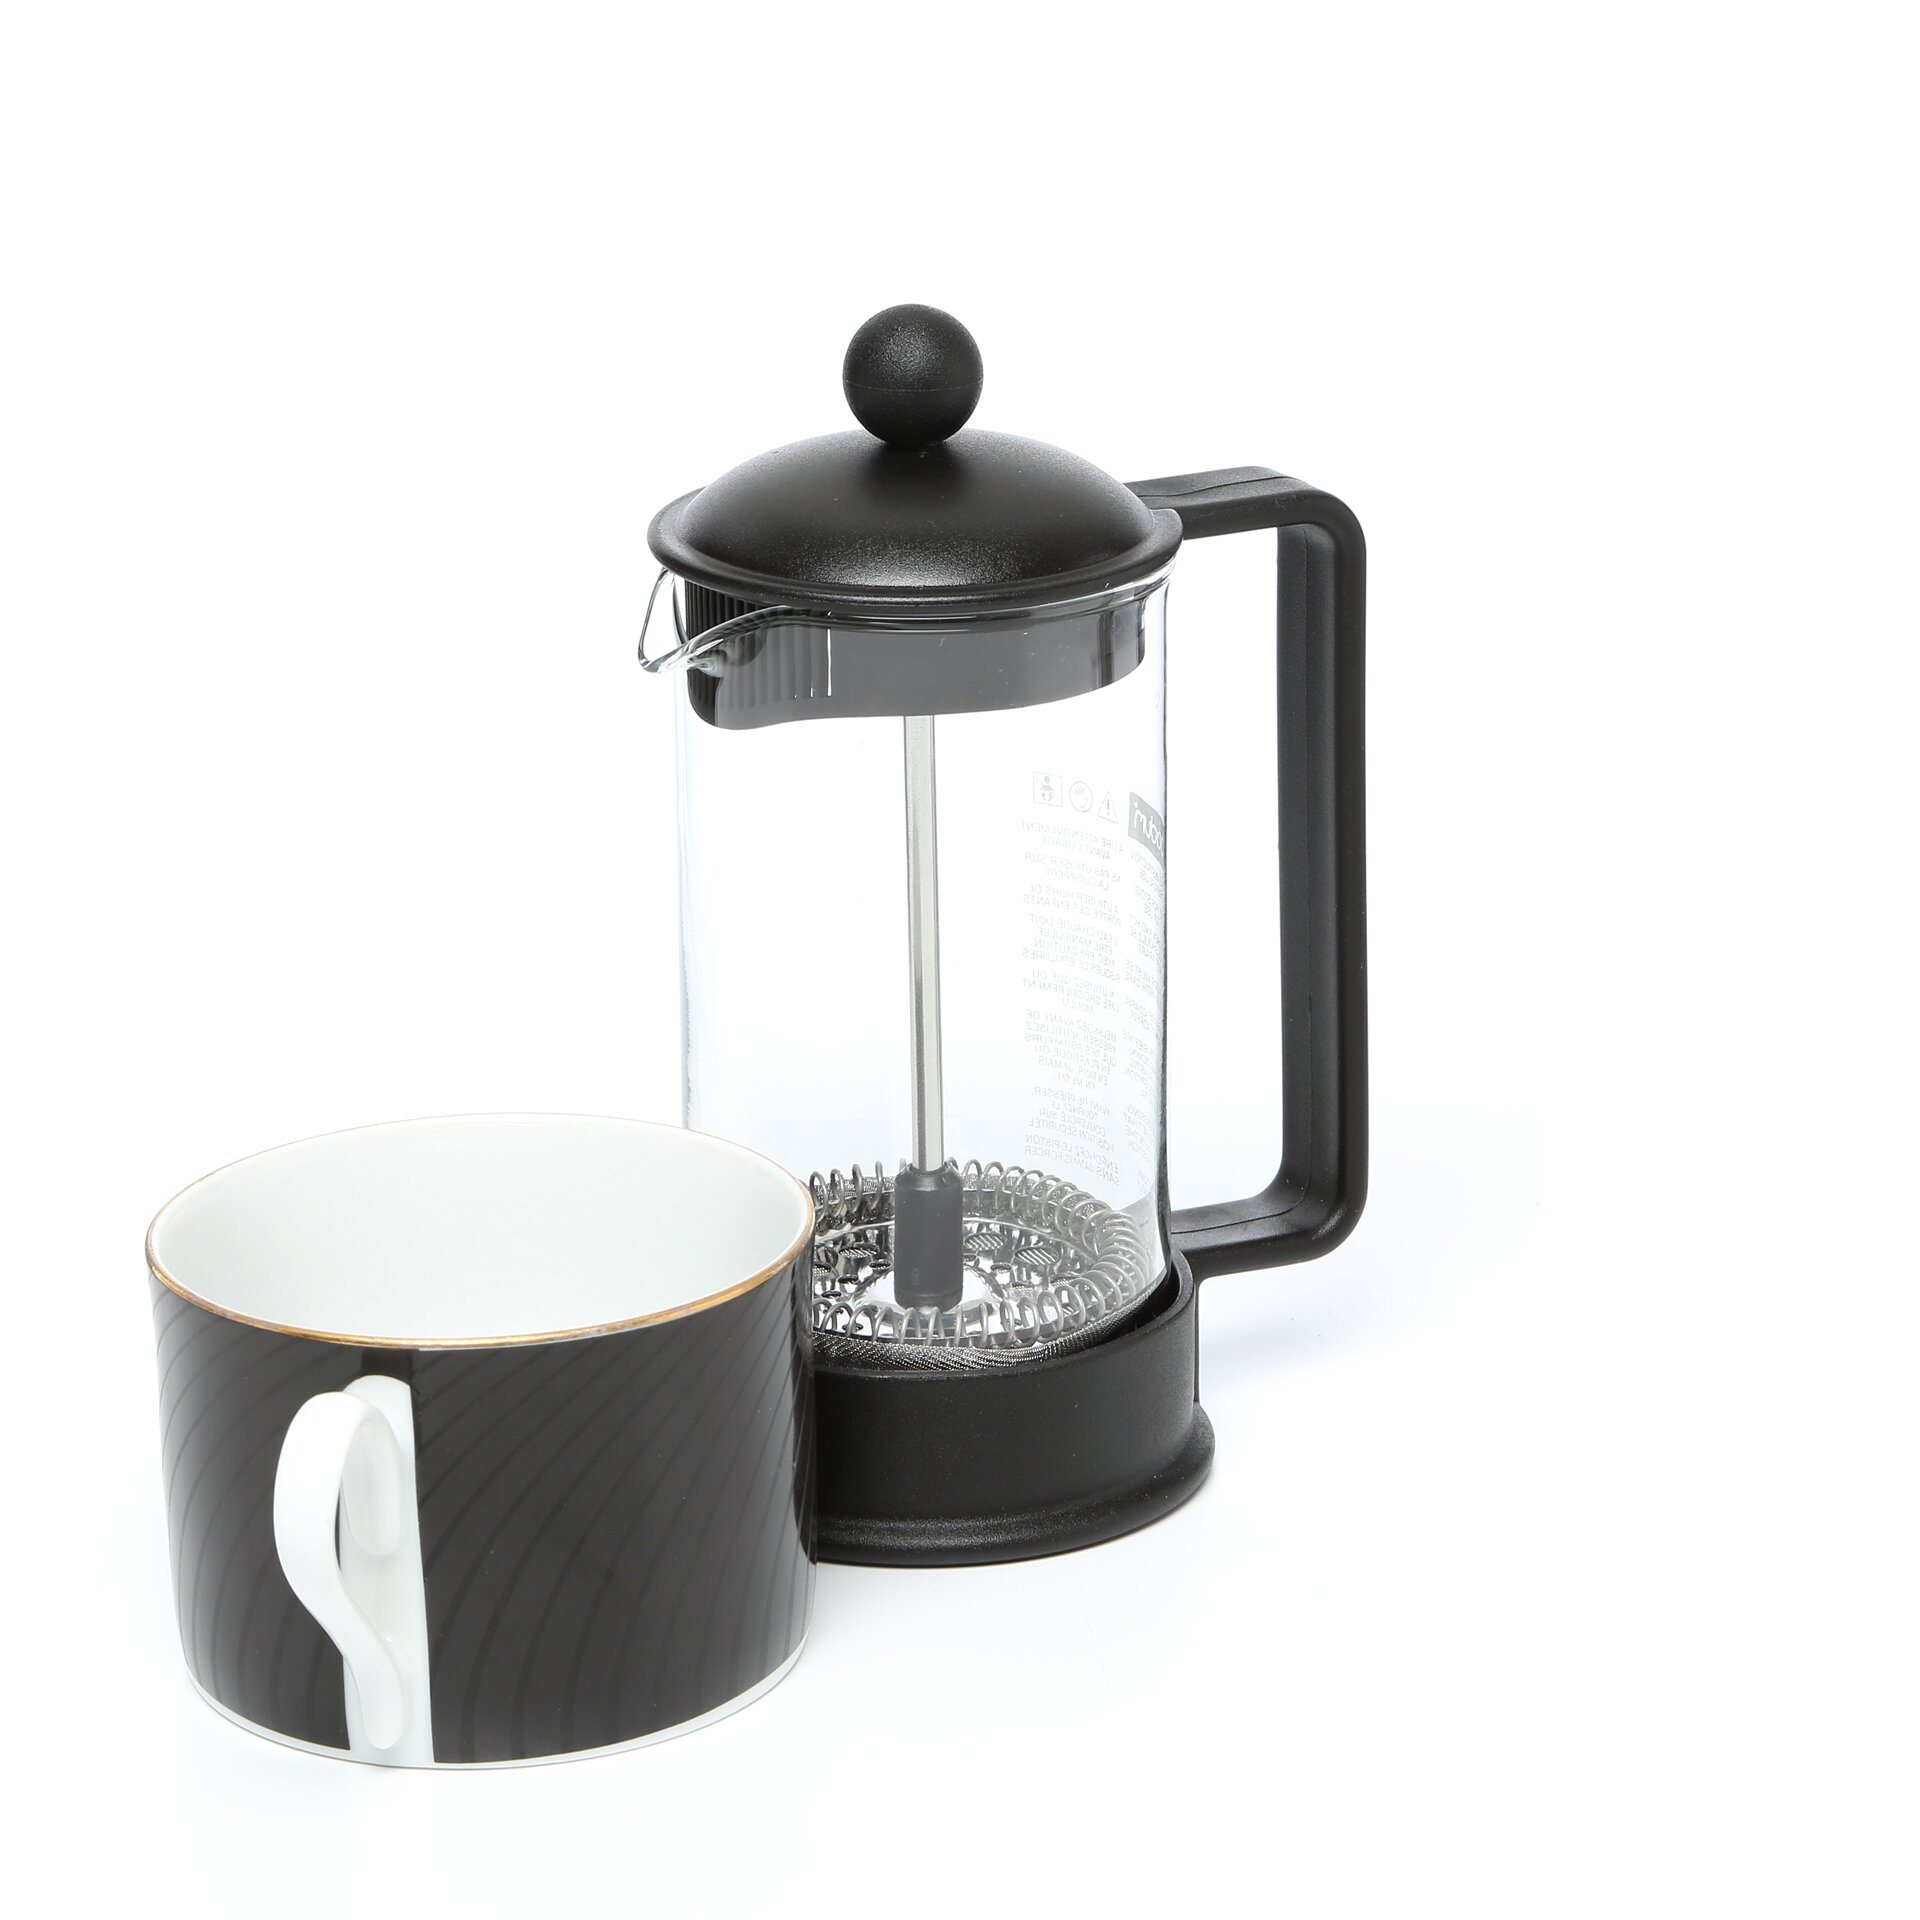 Bed bath beyond french press - Bodum Brazil French Press Coffee Maker Reviews Wayfair